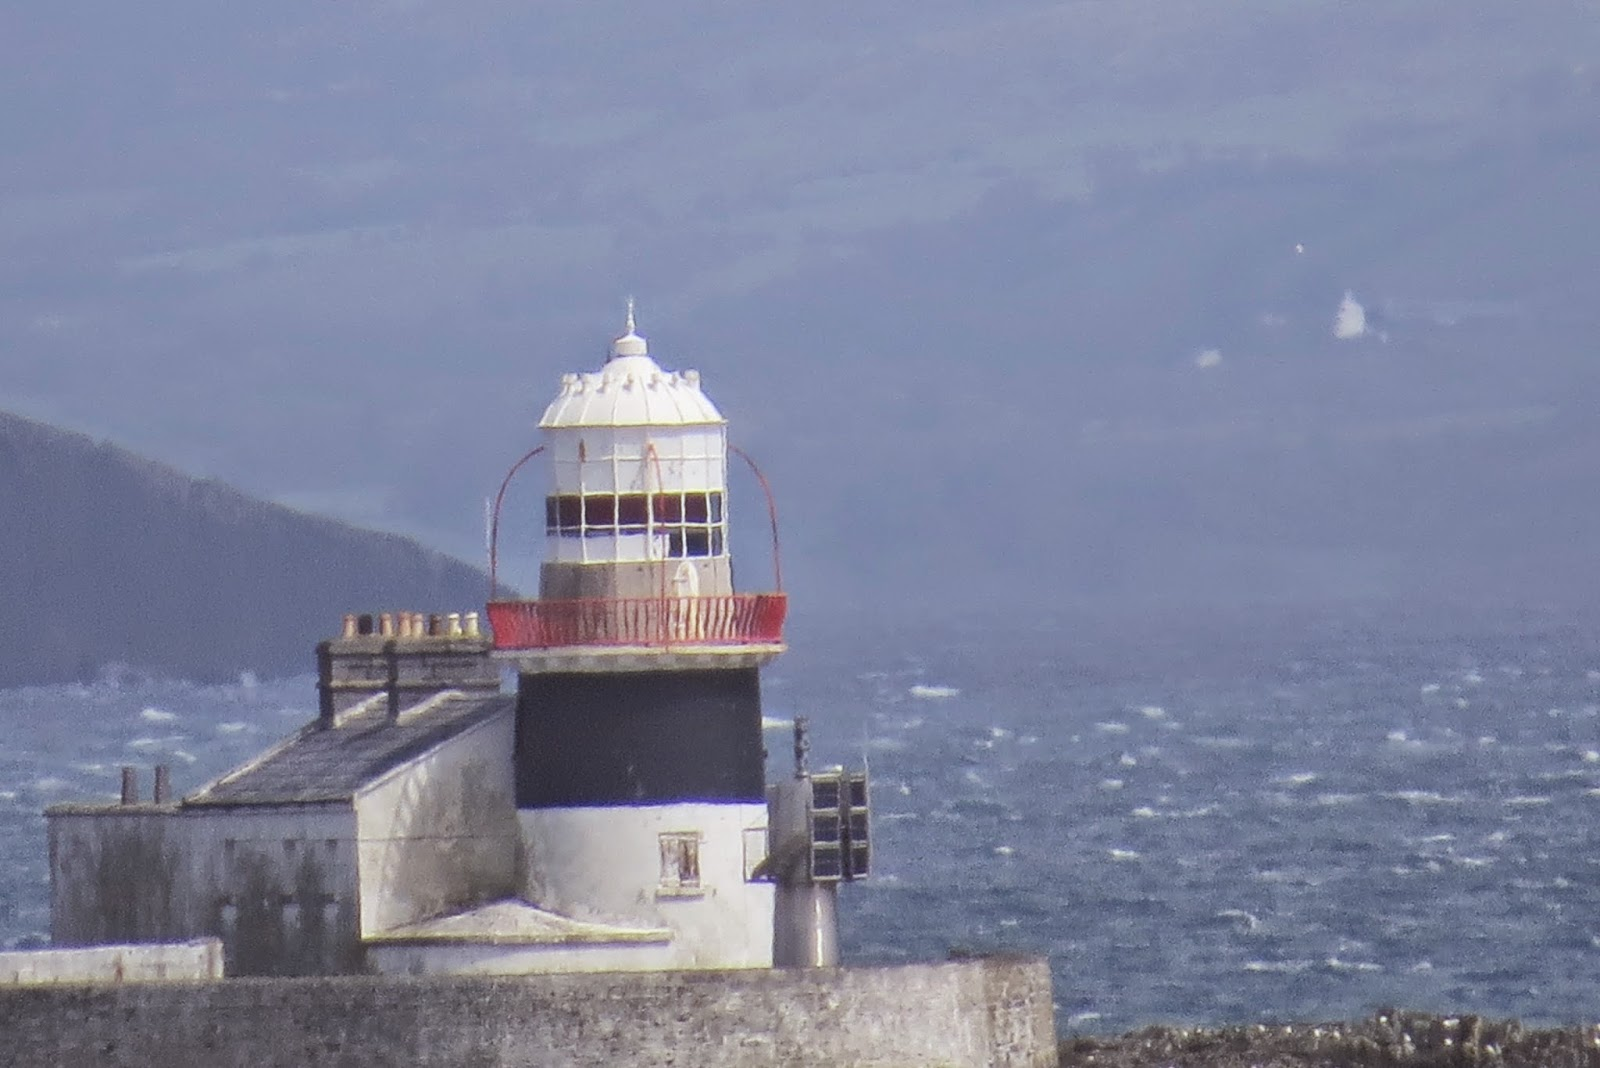 ireland lighthouses a photo essay Ireland's lighthouses: a photo essay by john eagle, ireland's lighthouses has 3 ratings and 1 review lighthouses have played an important role on ireland's.